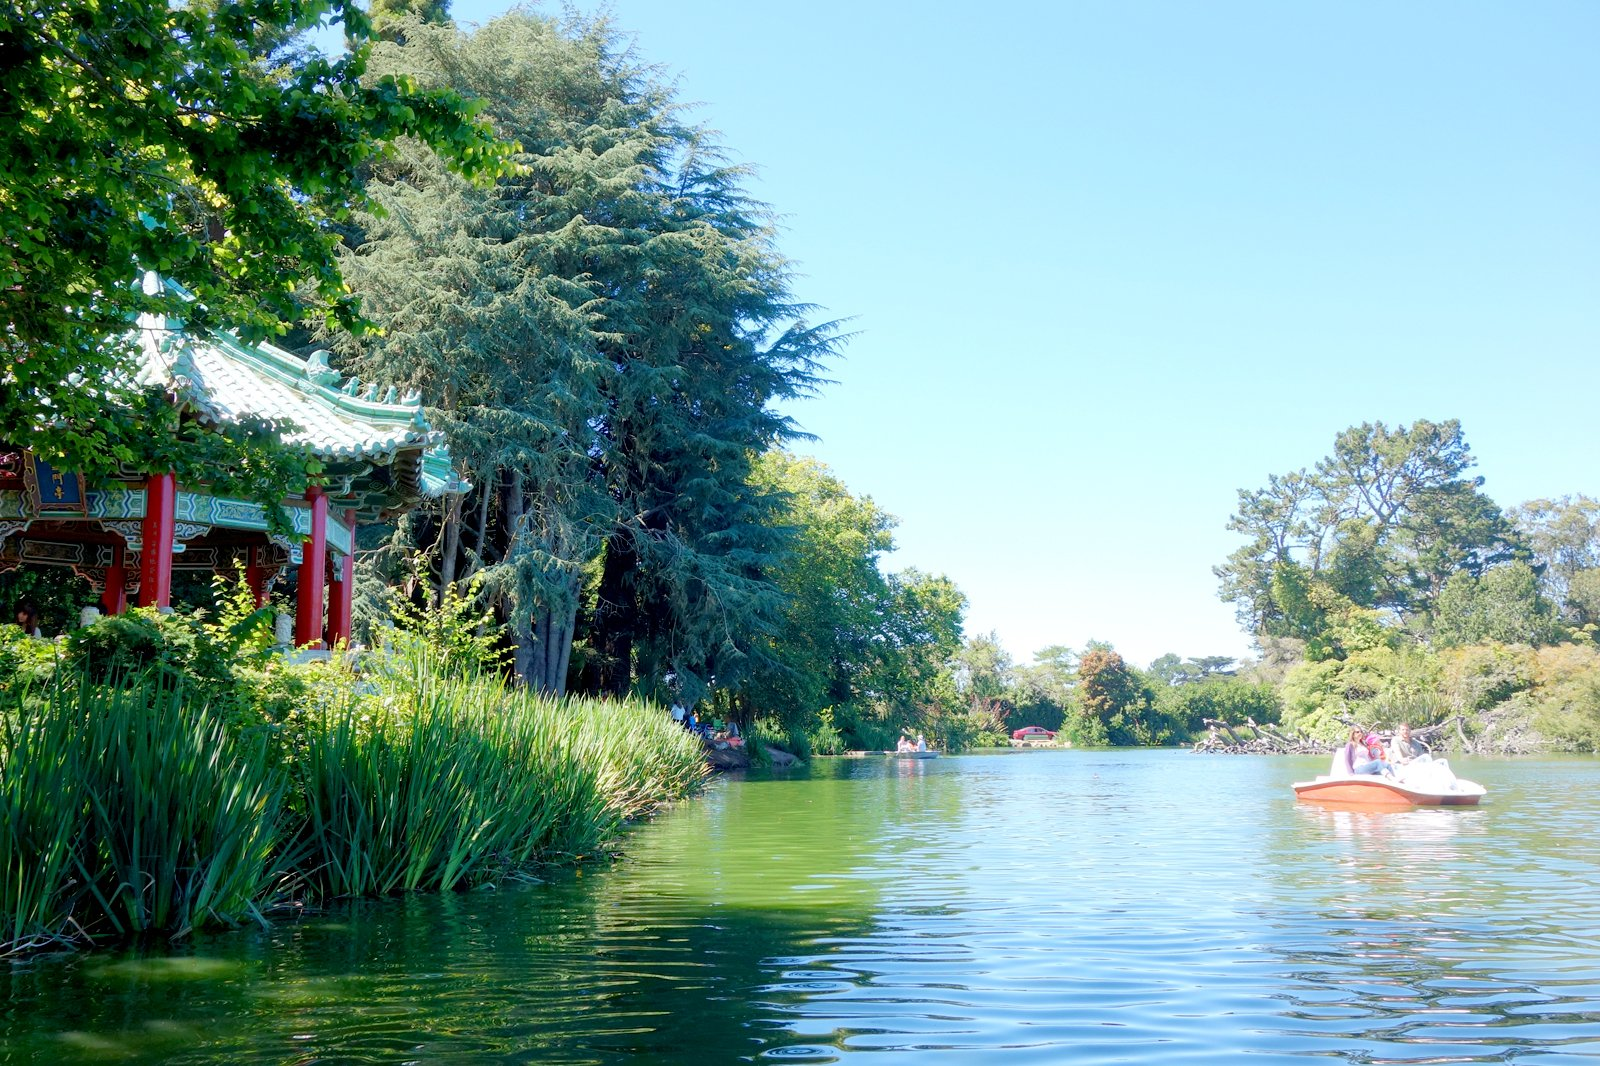 Go Pedal Boating At Stow Lake